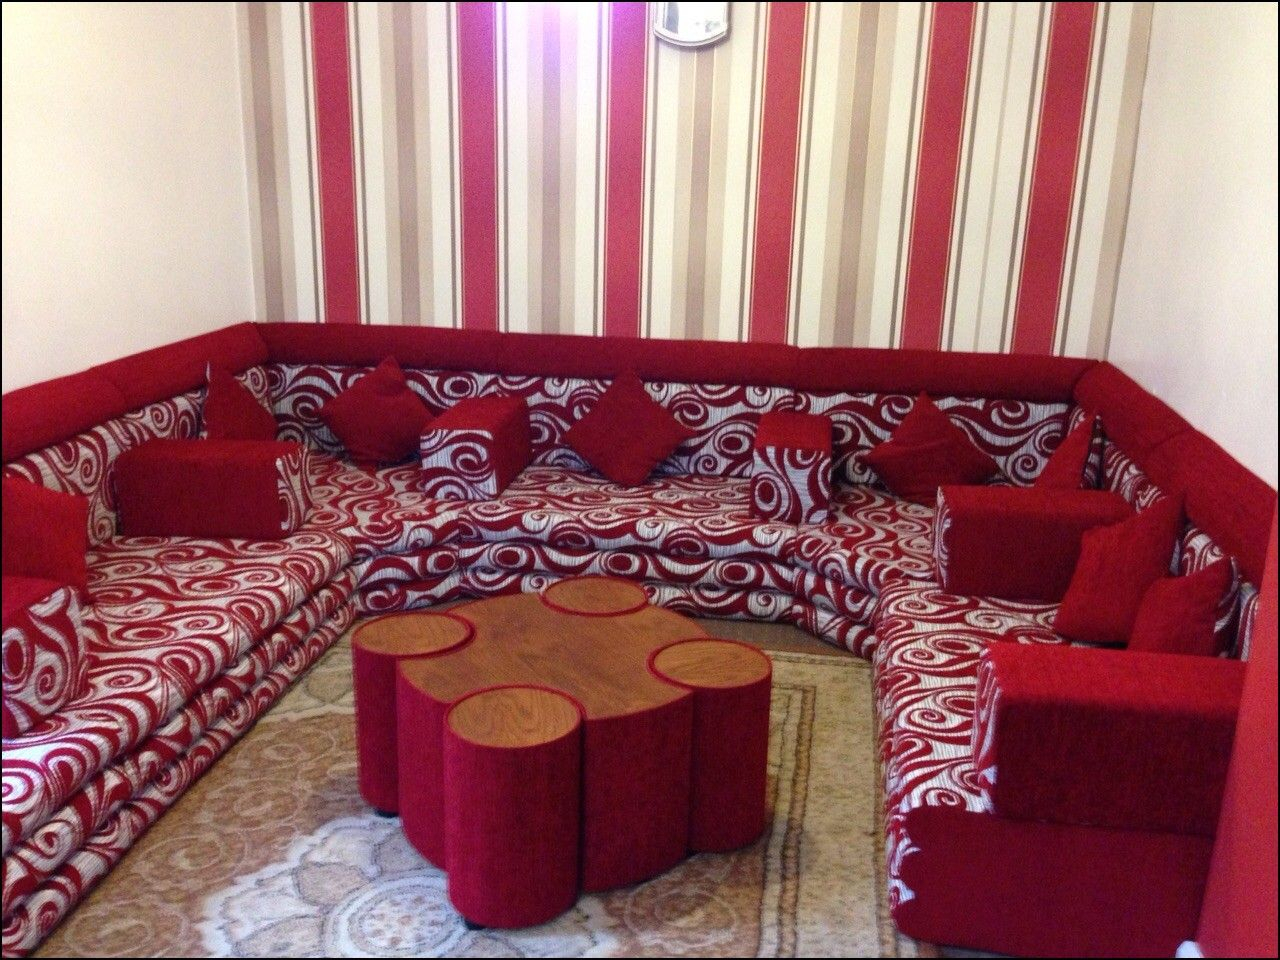 Arab Style Couches   Old Fashioned House, Home Decor Within Old Fashioned Sofas (View 12 of 15)